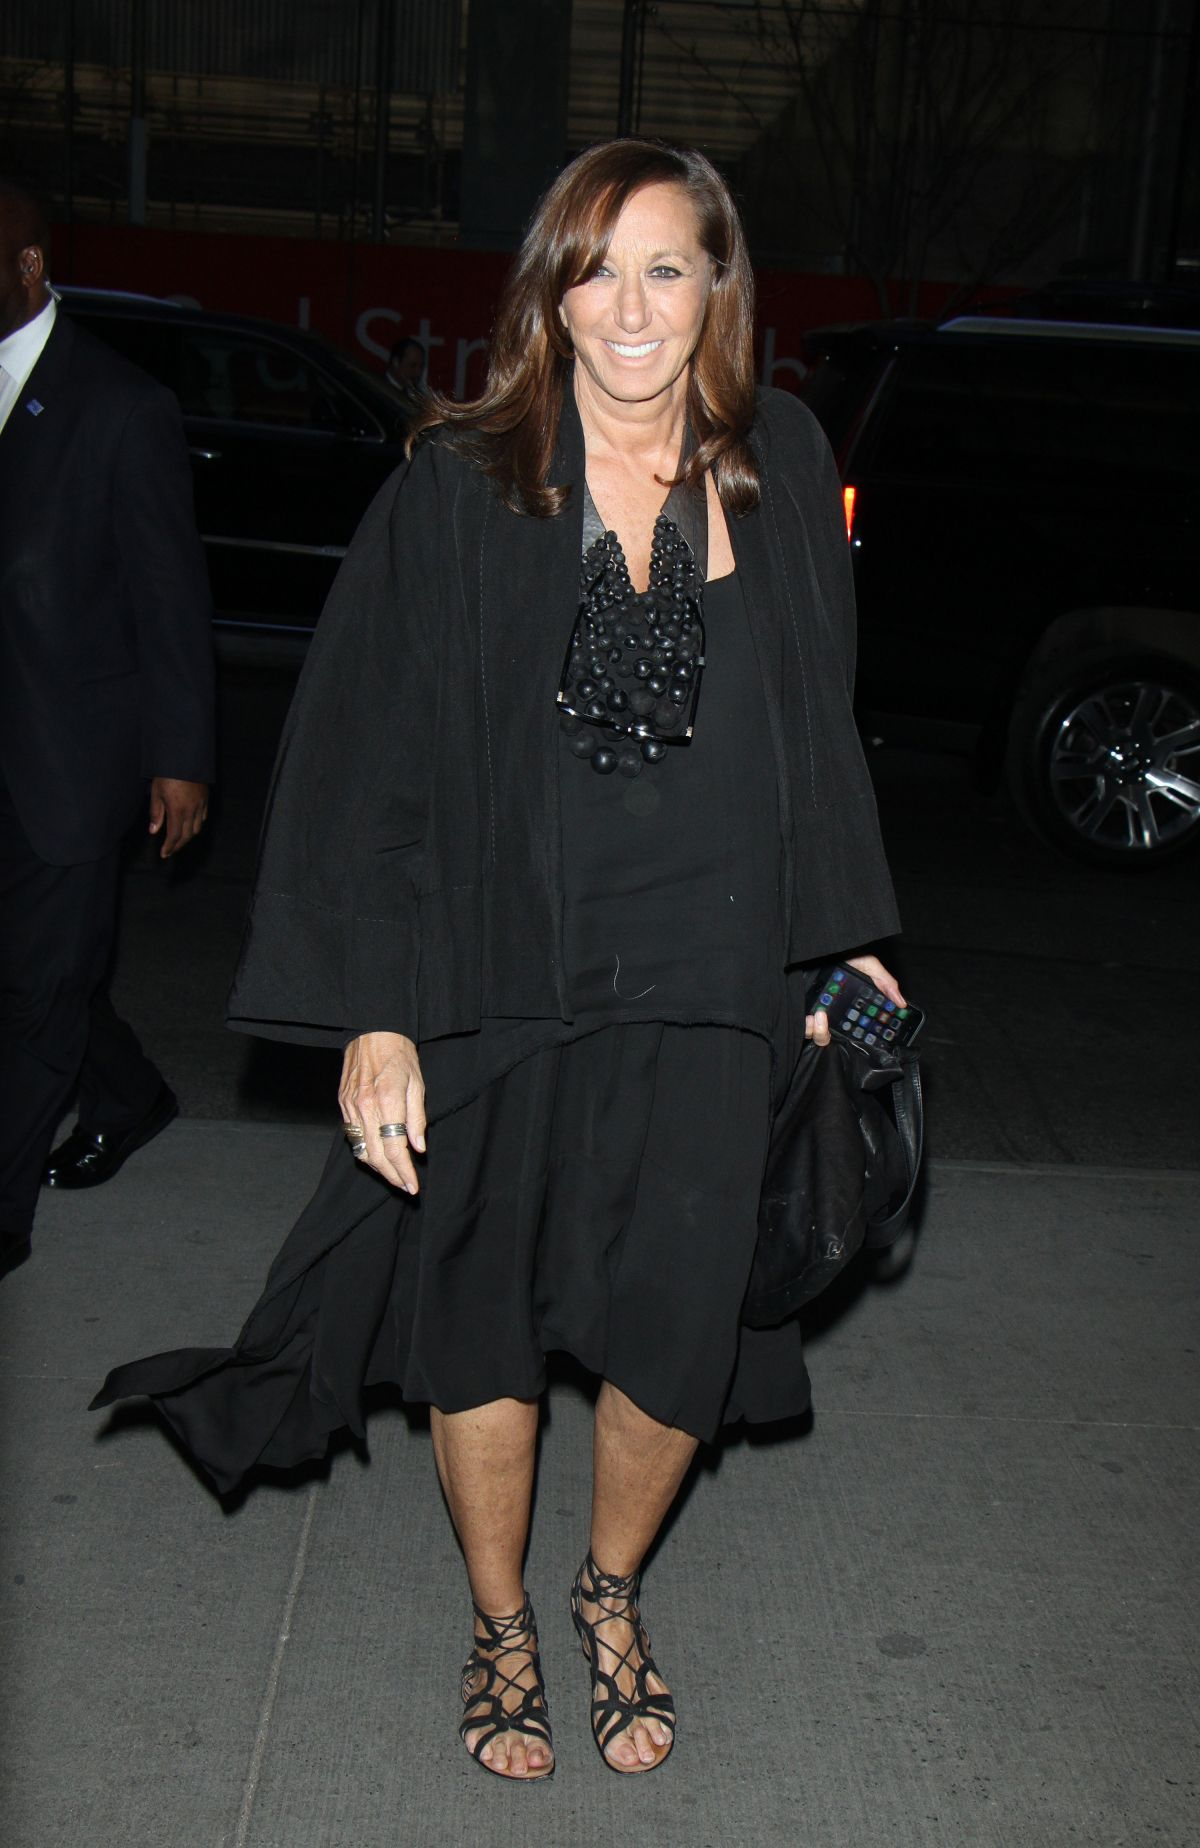 Donna karan at a bigger splash premiere in new york 04 for Donna karen new york